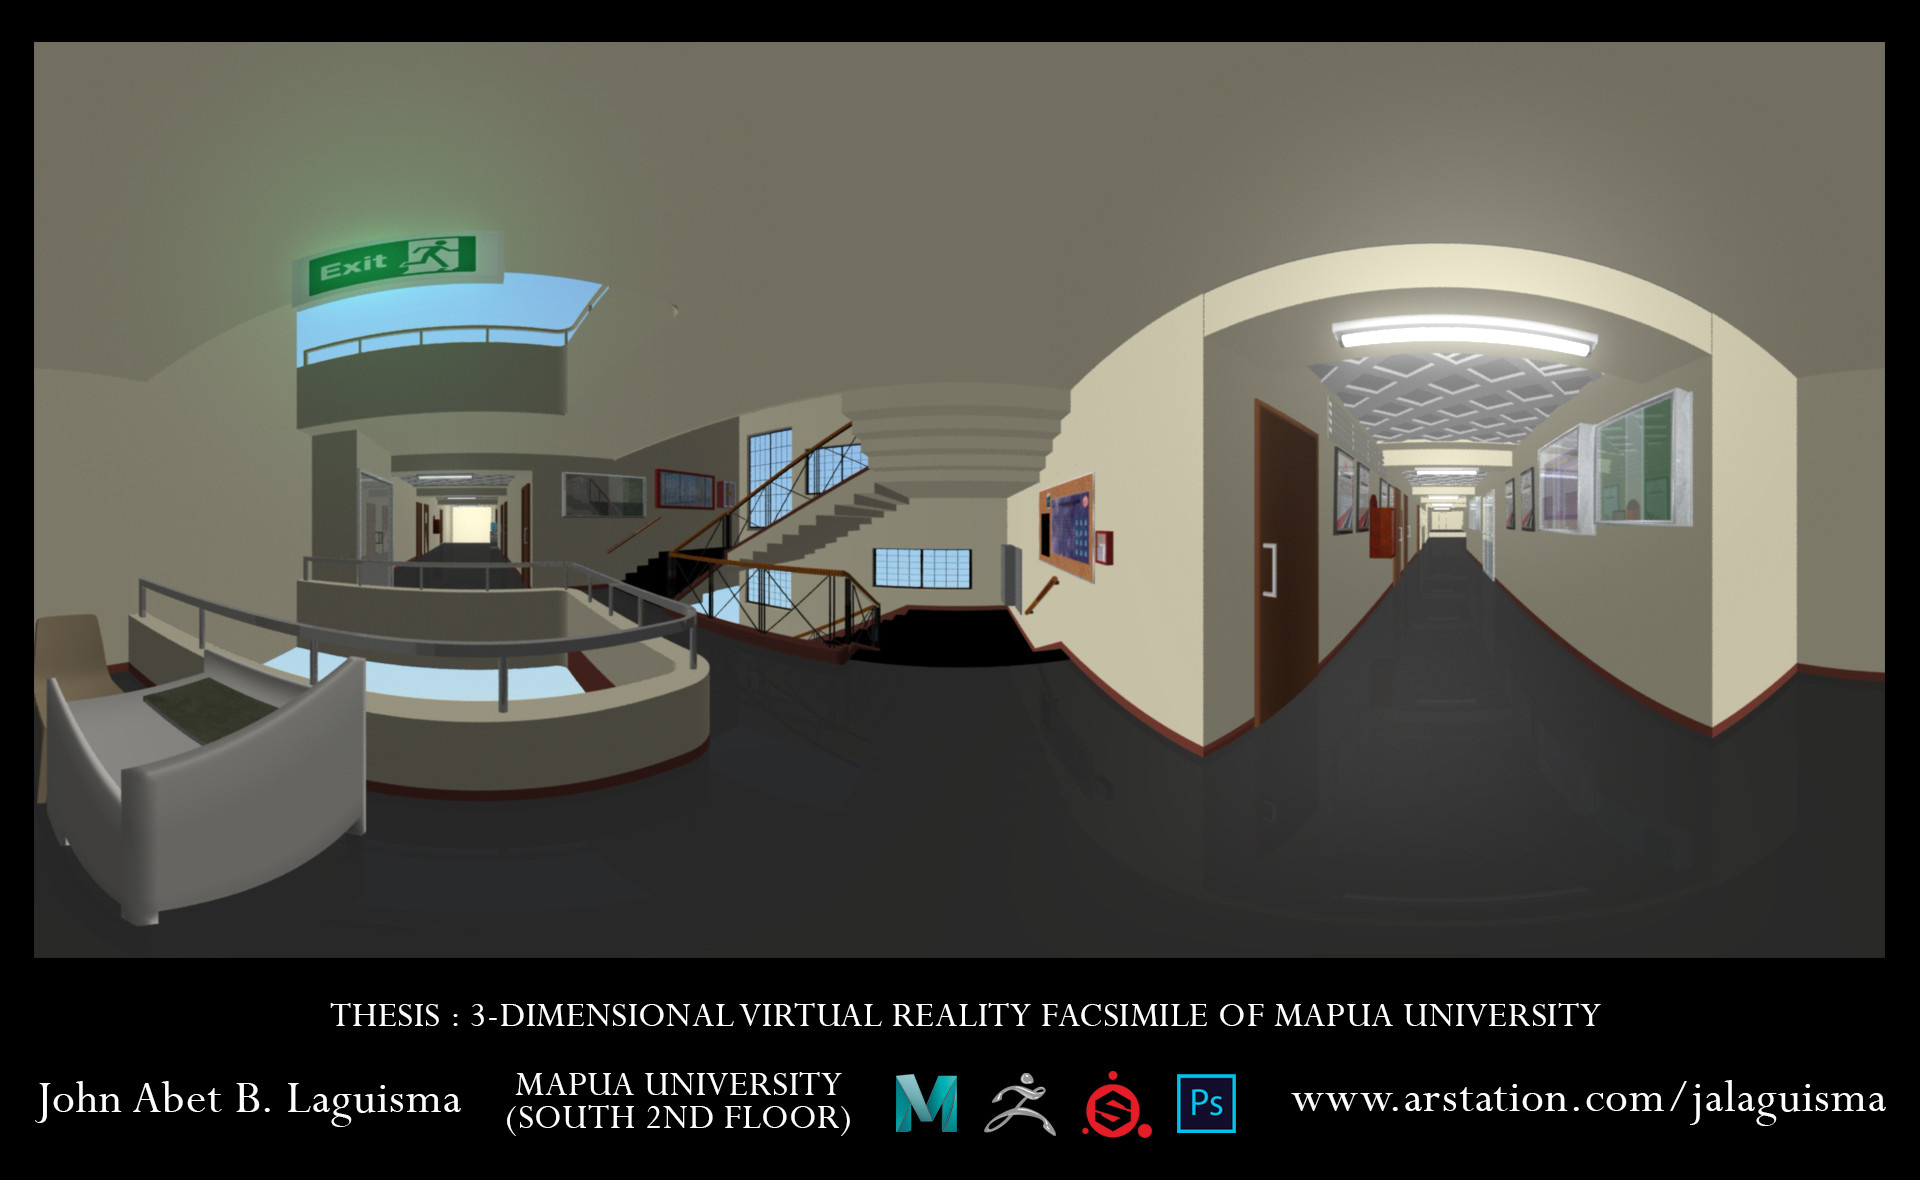 mapua thesis architecture